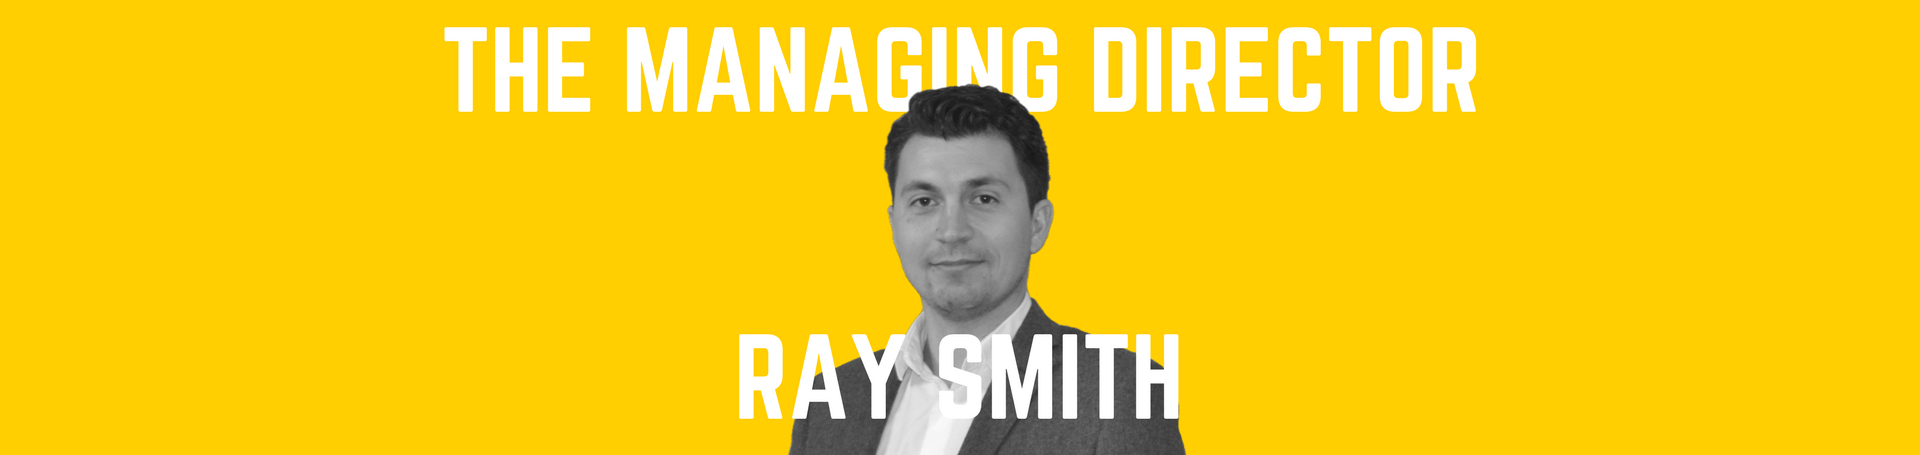 Ray Smith - The Managing Director